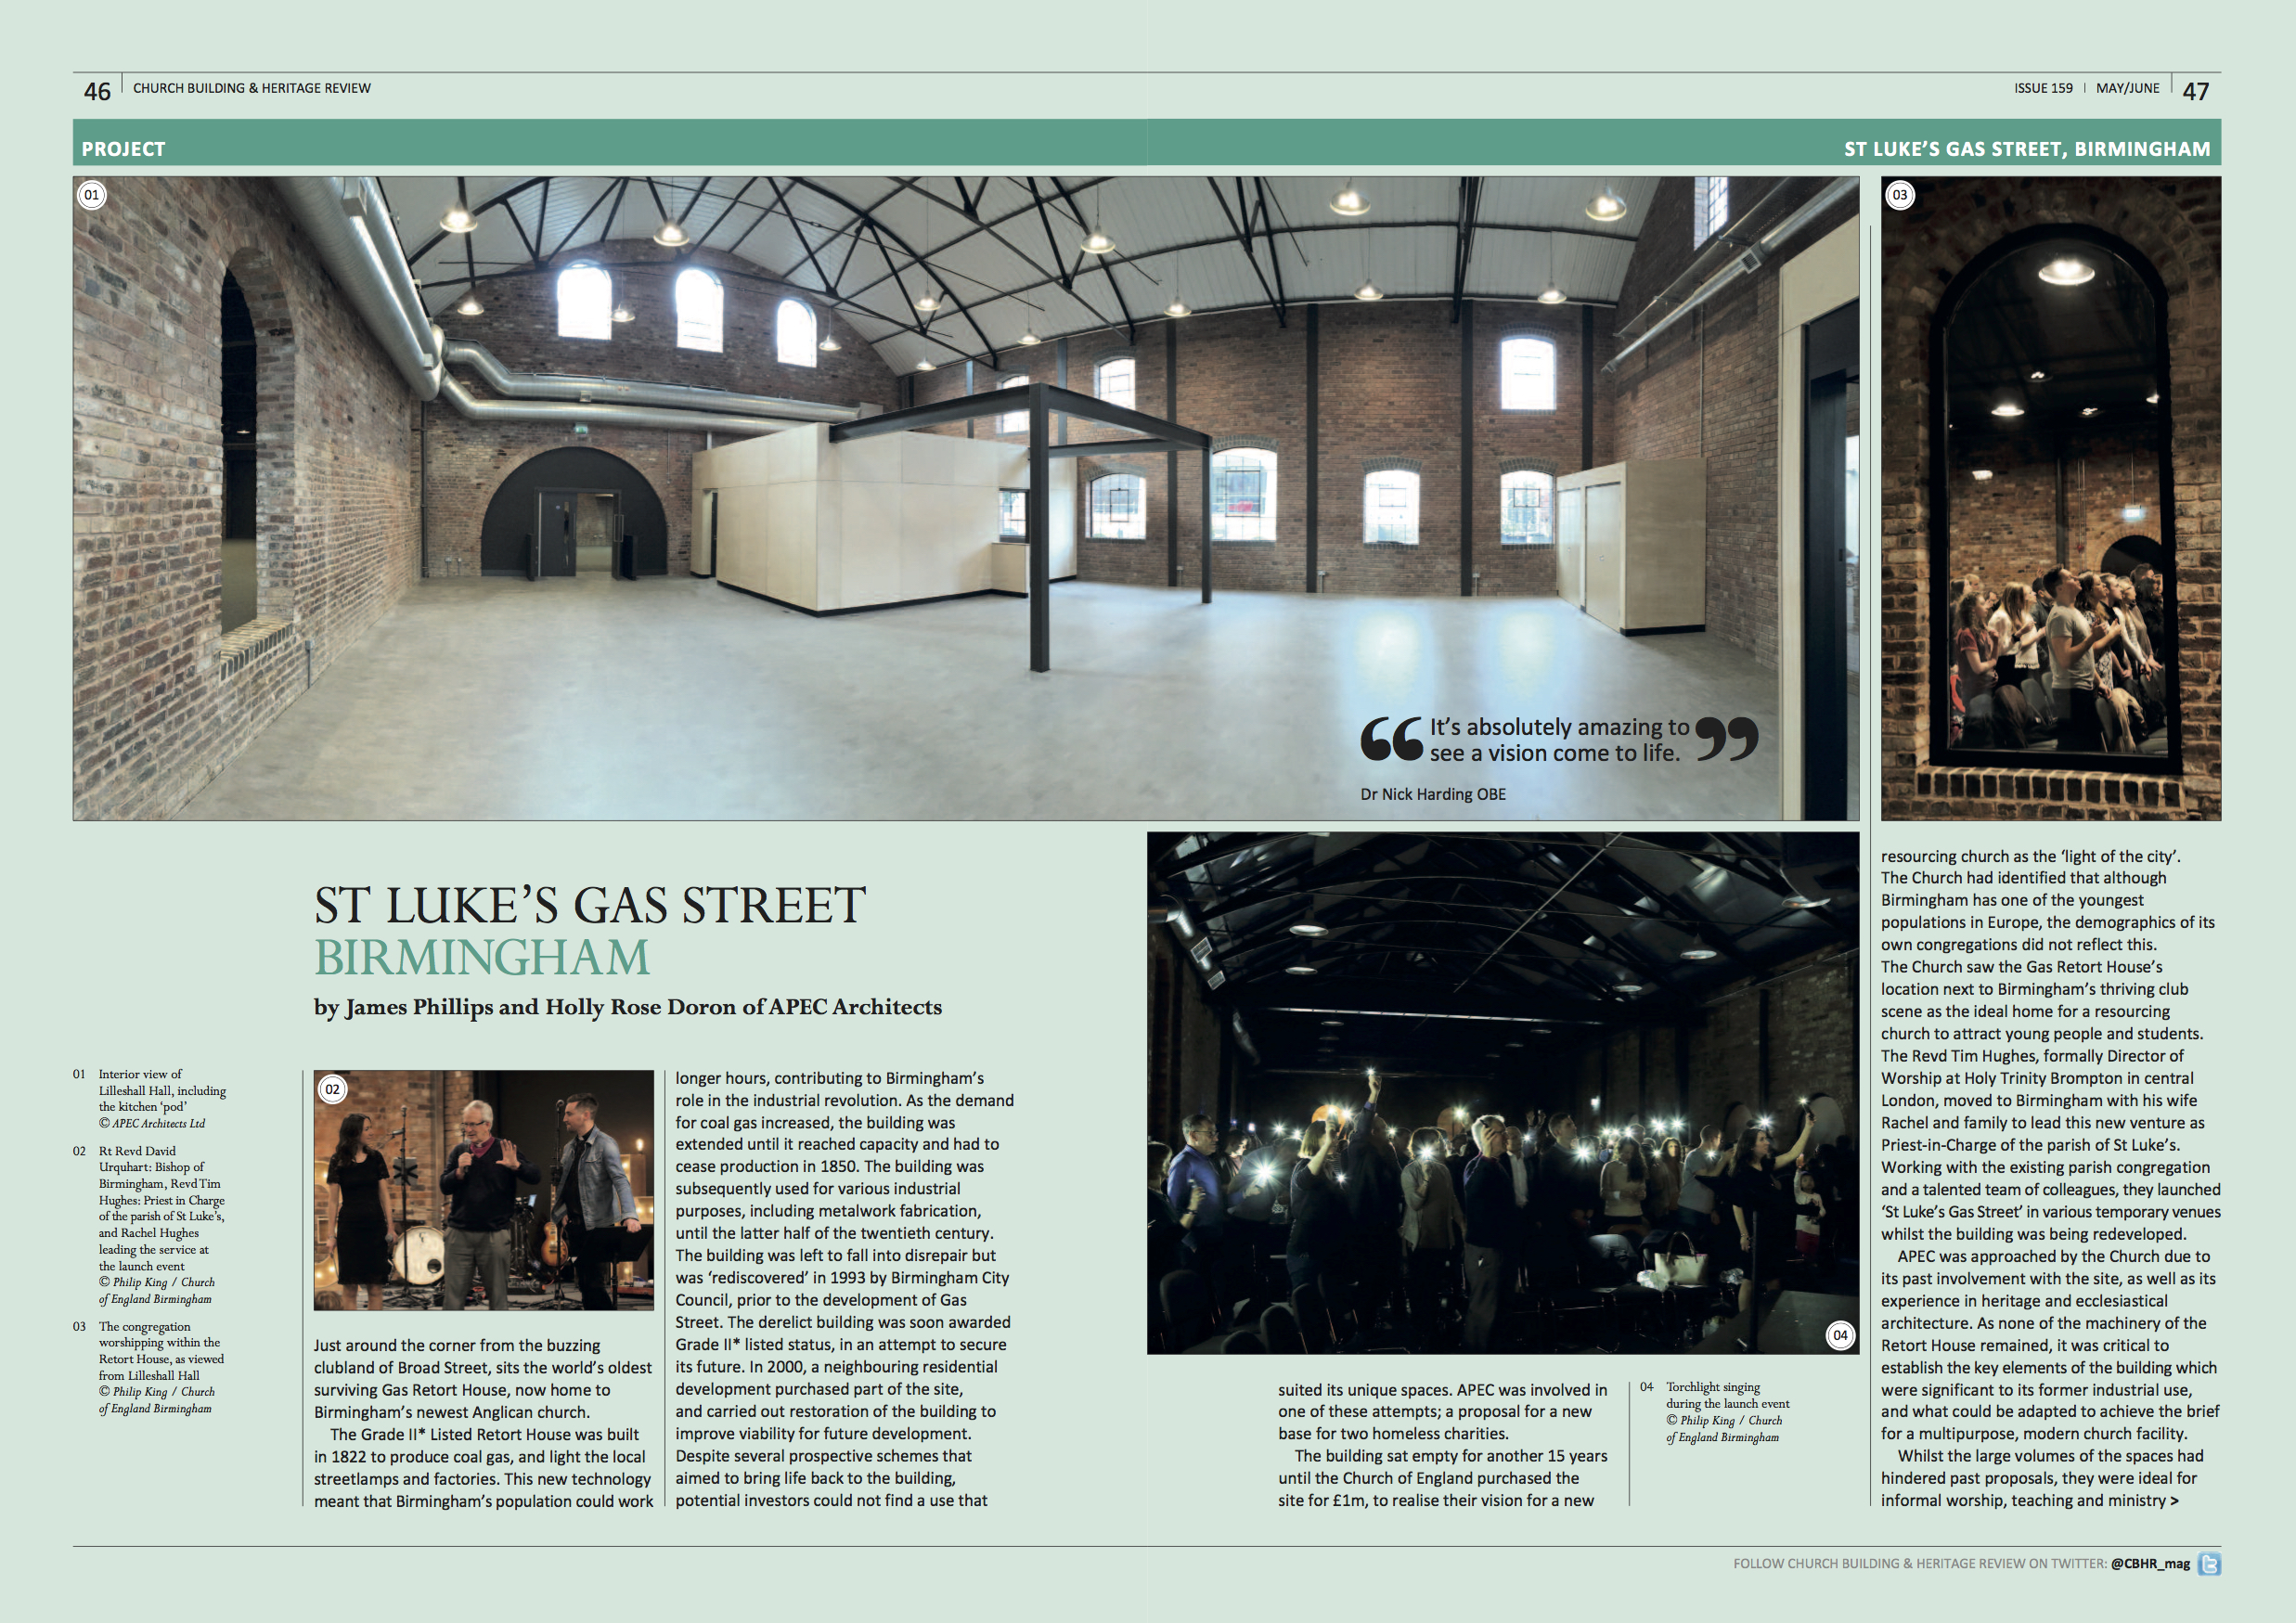 St Luke's Gas Street features in the Church Building & Heritage Review